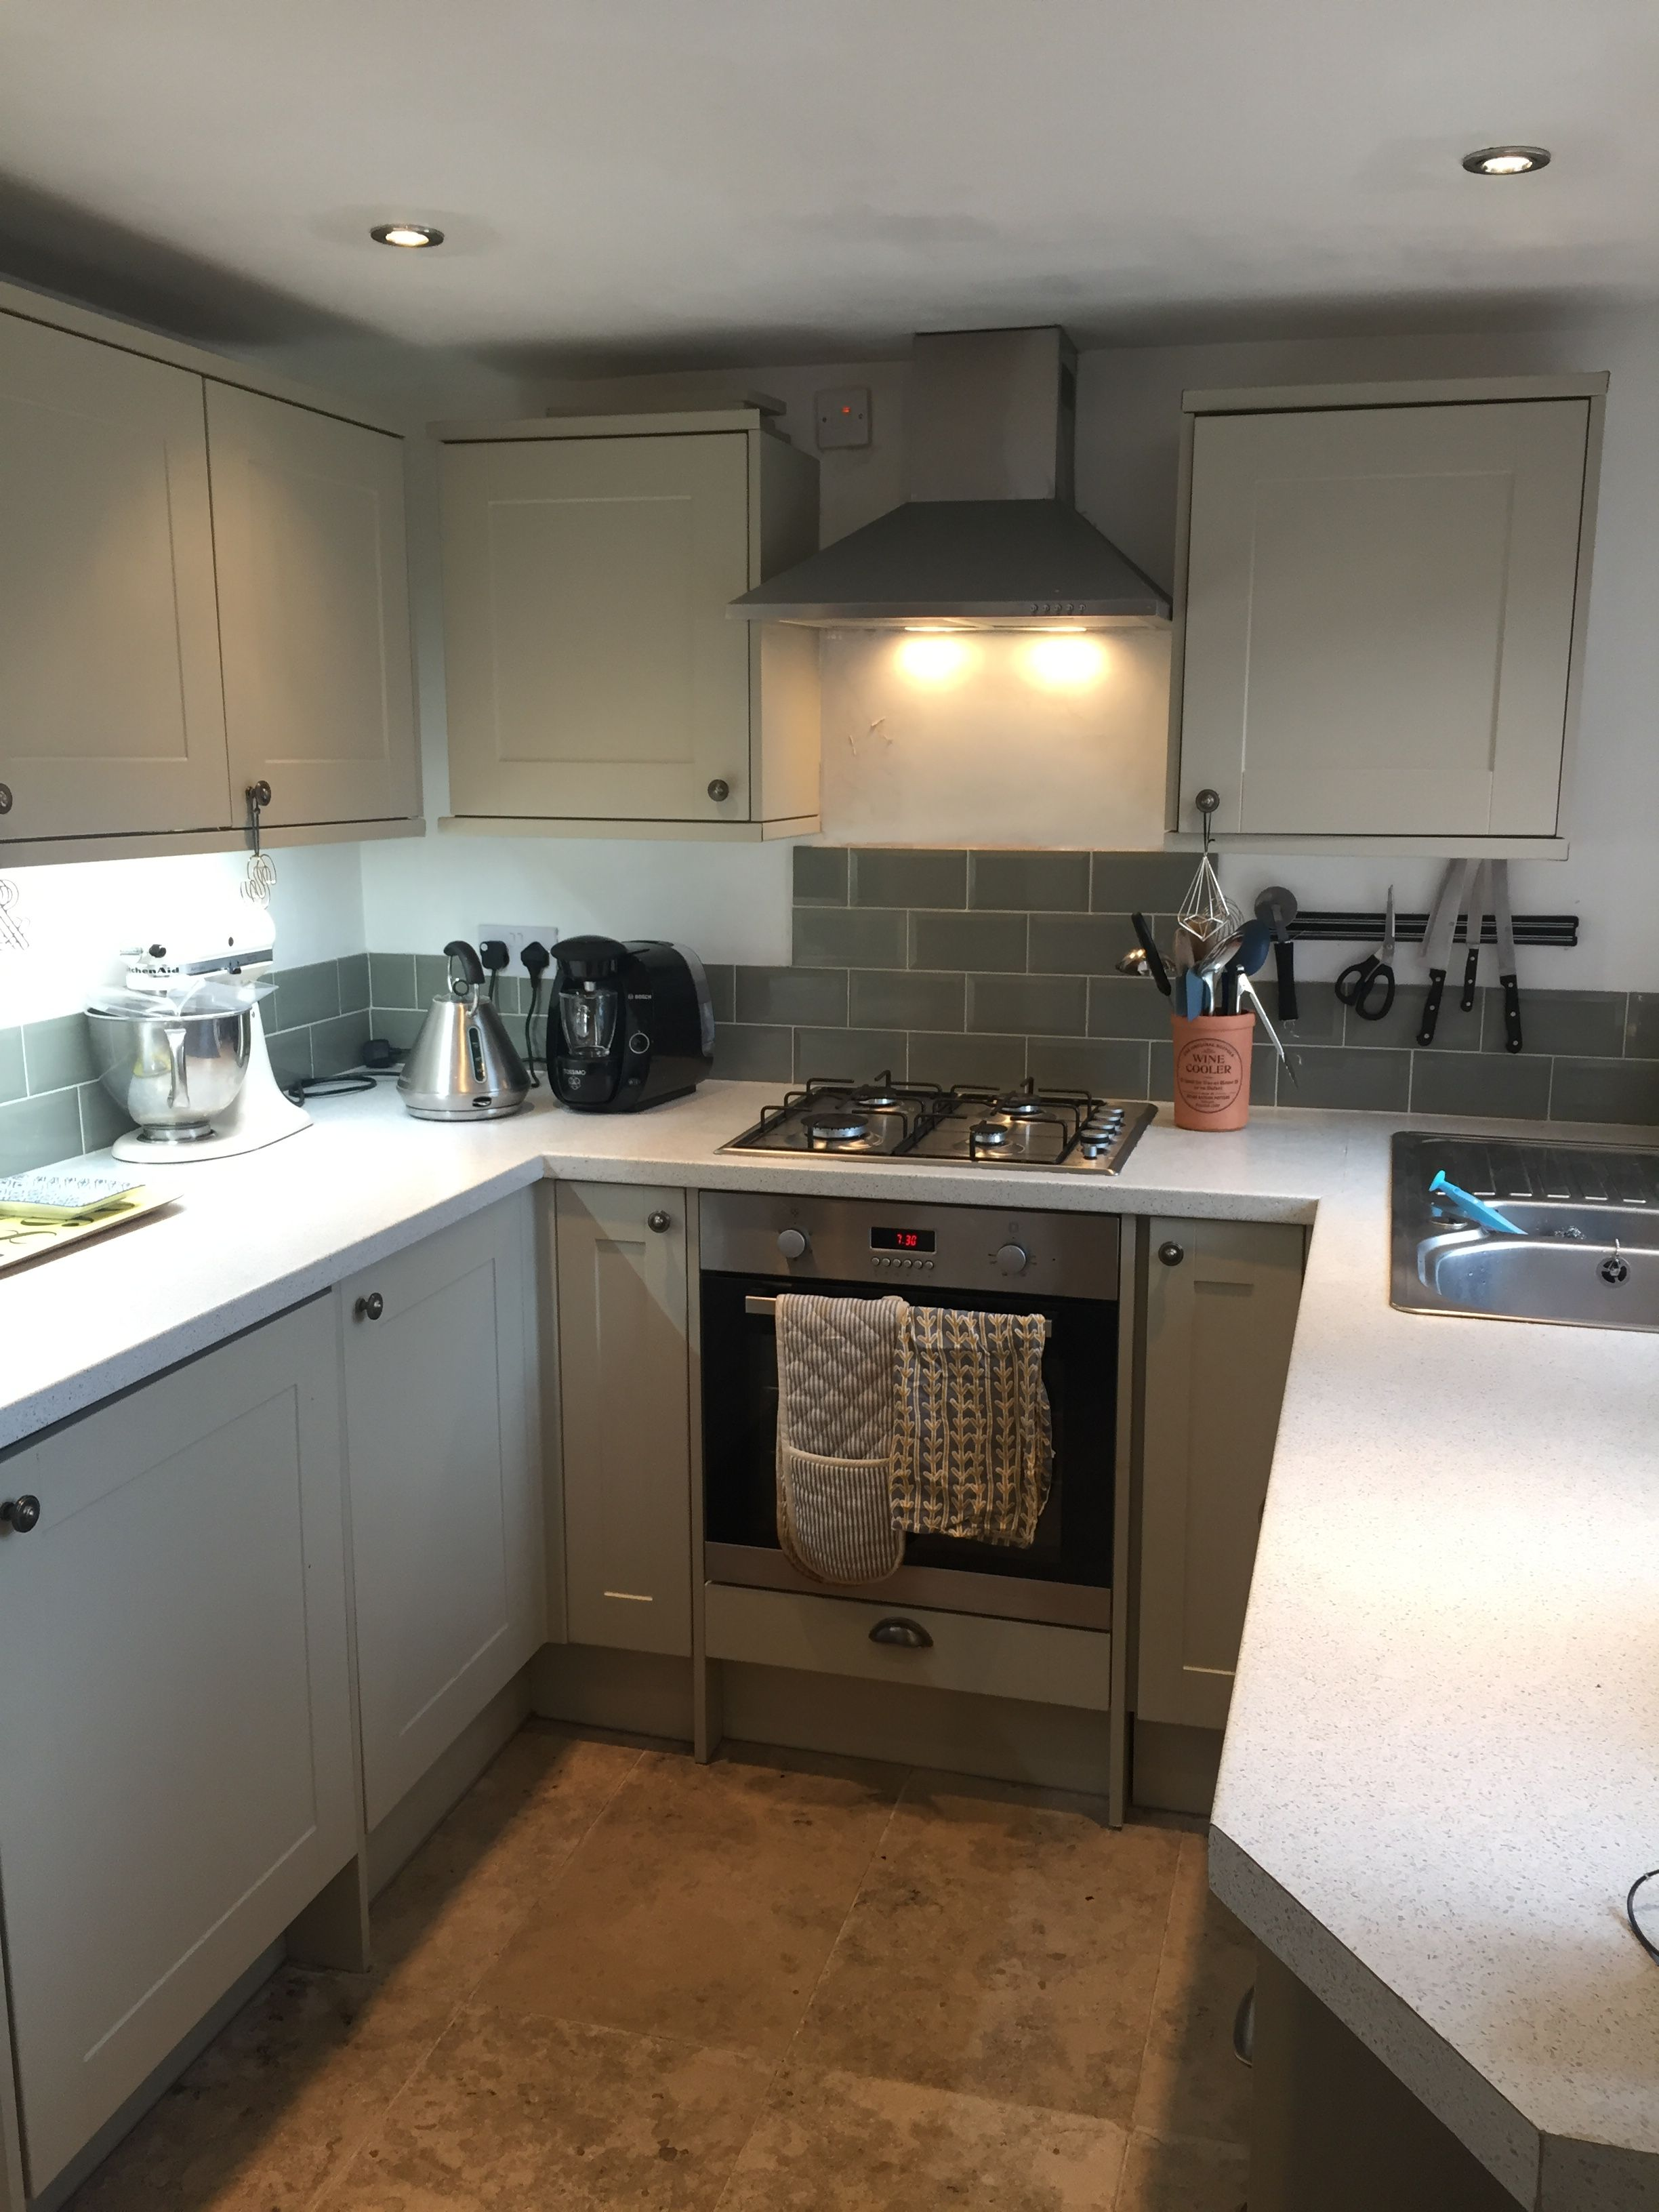 Small Kitchen Ed It Burford Grey By Howdens Love The Genuine Fossil Tiles